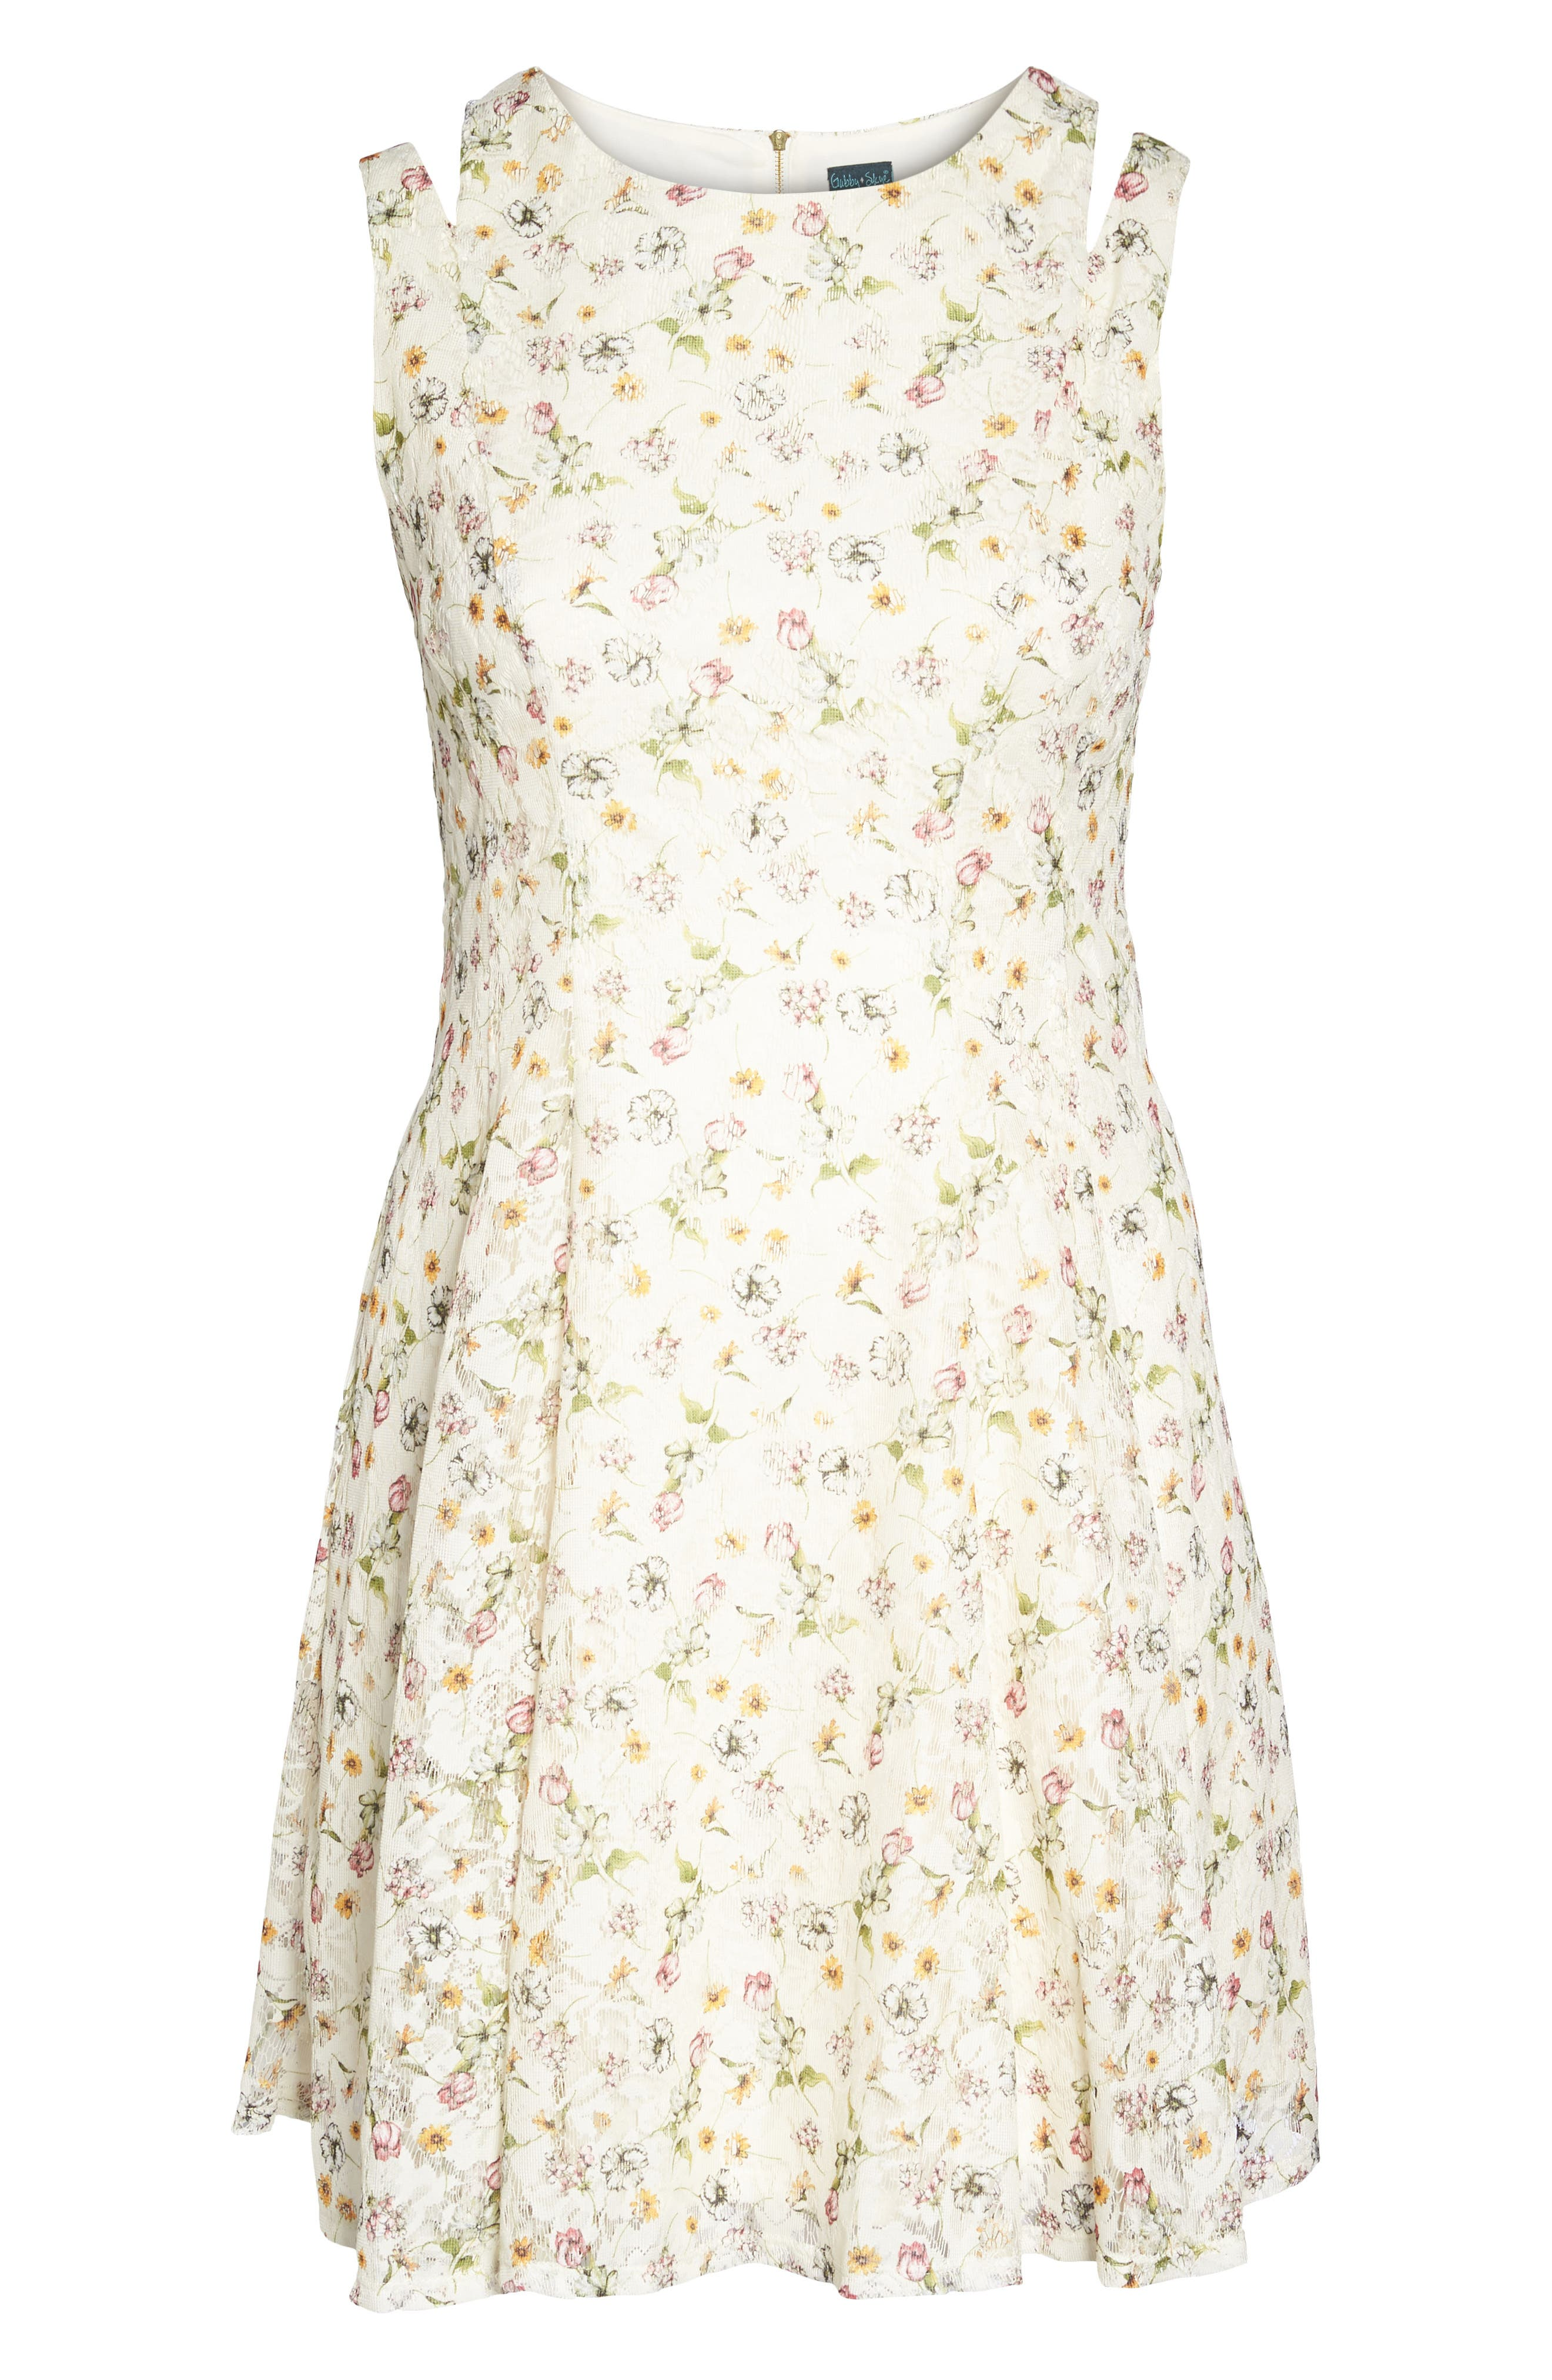 Cutout Shoulder Floral Print Lace Dress,                             Alternate thumbnail 6, color,                             Cream Multi